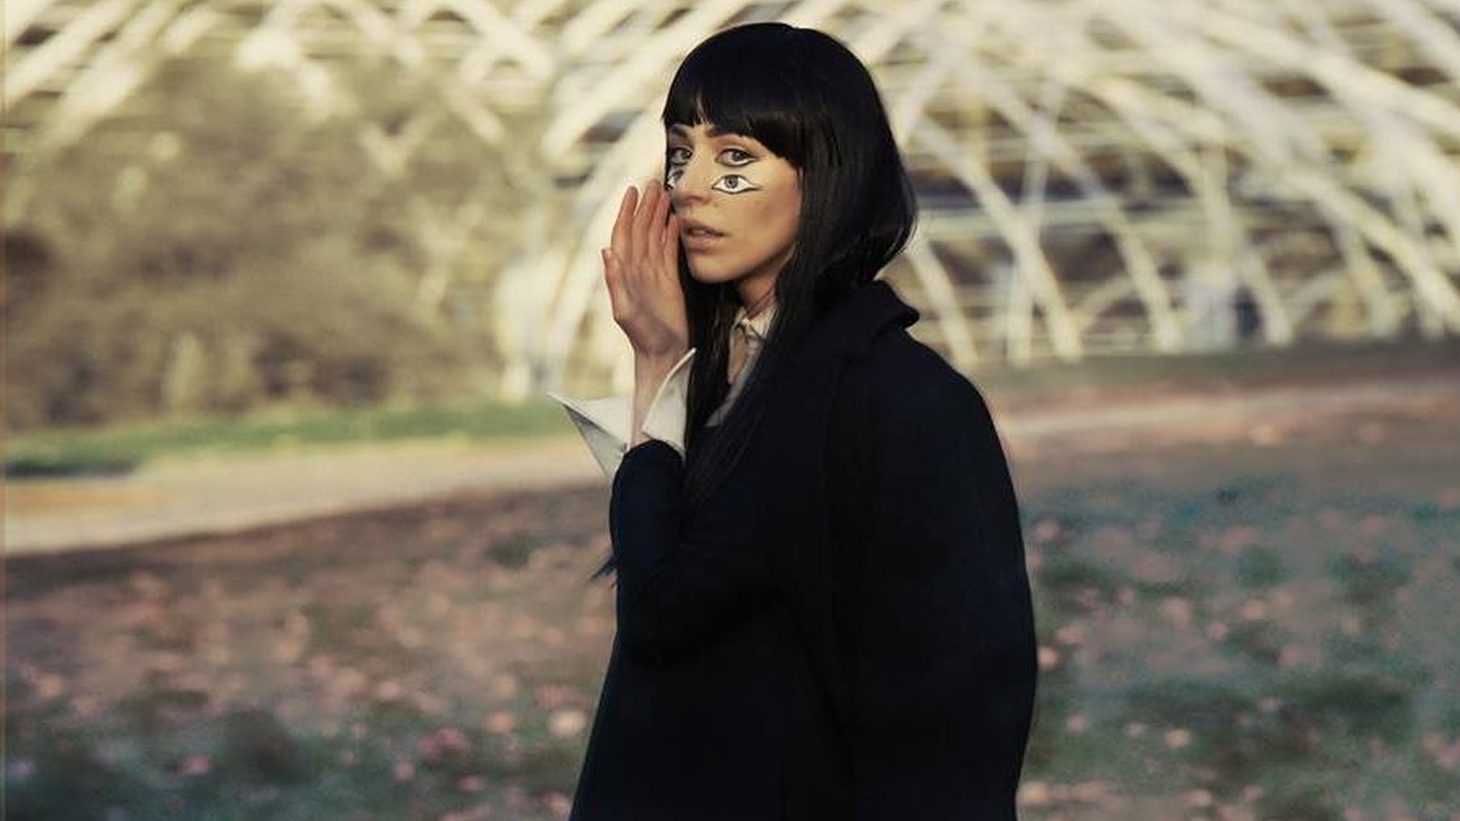 Chairlift's Caroline Polacheck is cooking up her debut solo album under the name Ramona Lisa. It's recorded entirely on her laptop without instruments or external mics.